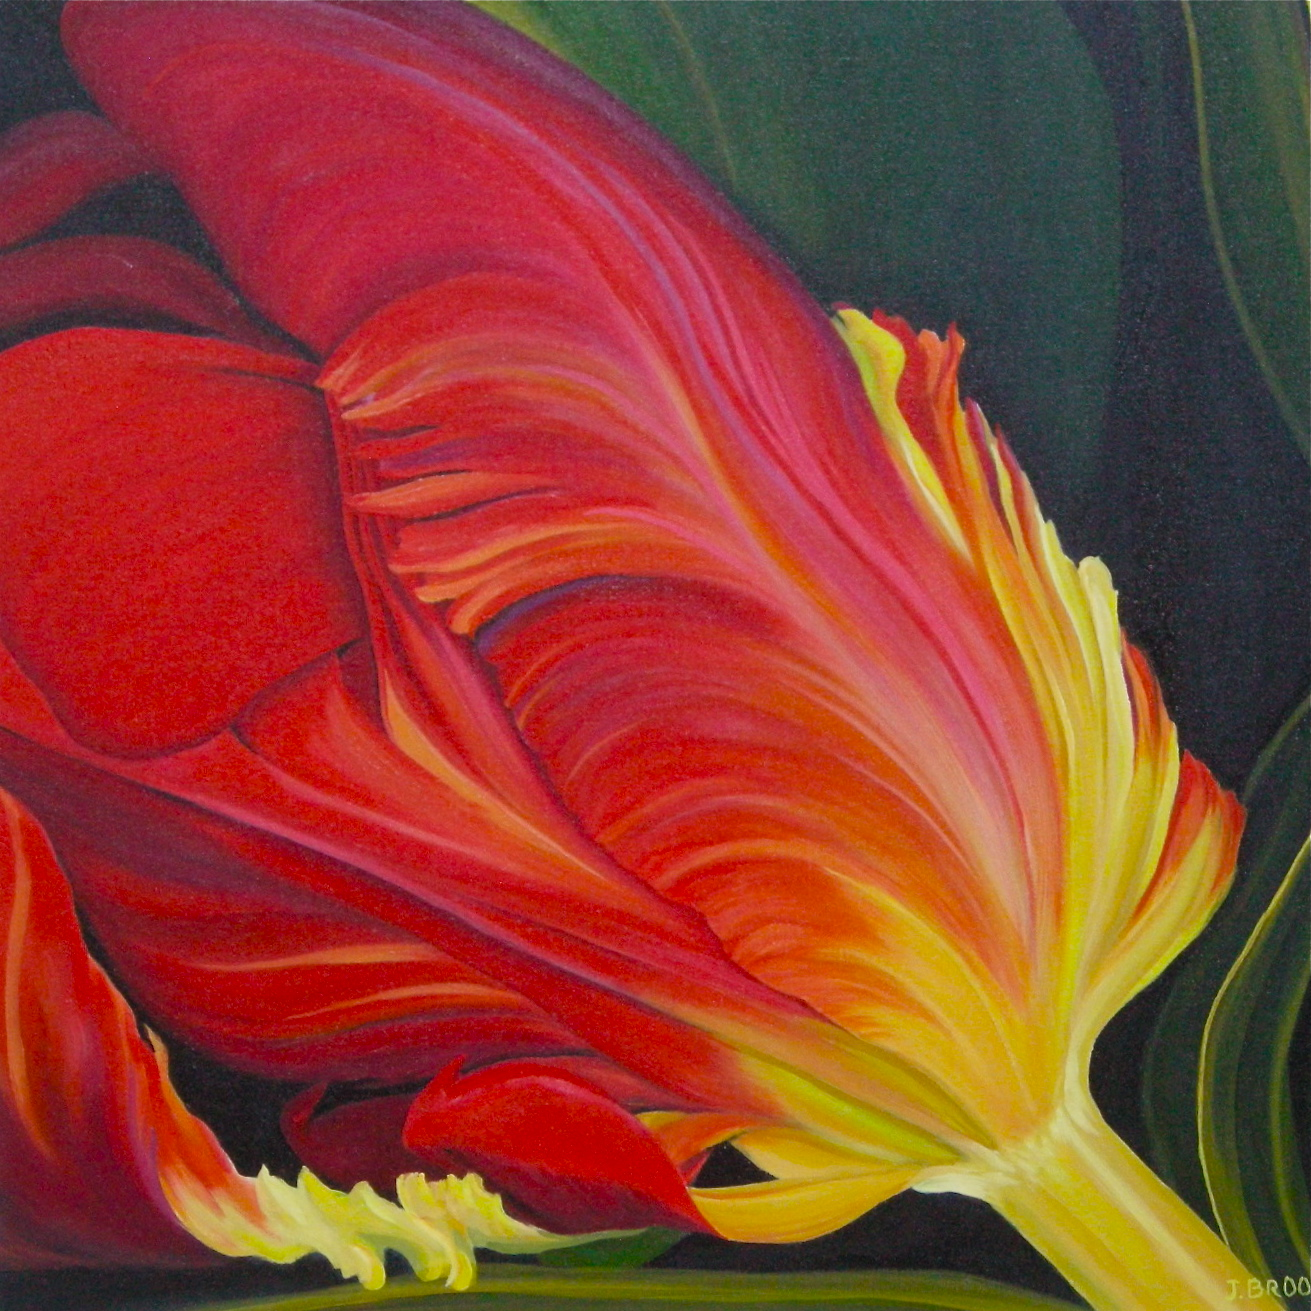 parrot-tulip-for-heart-and-stroke-foundation-24x24-2011